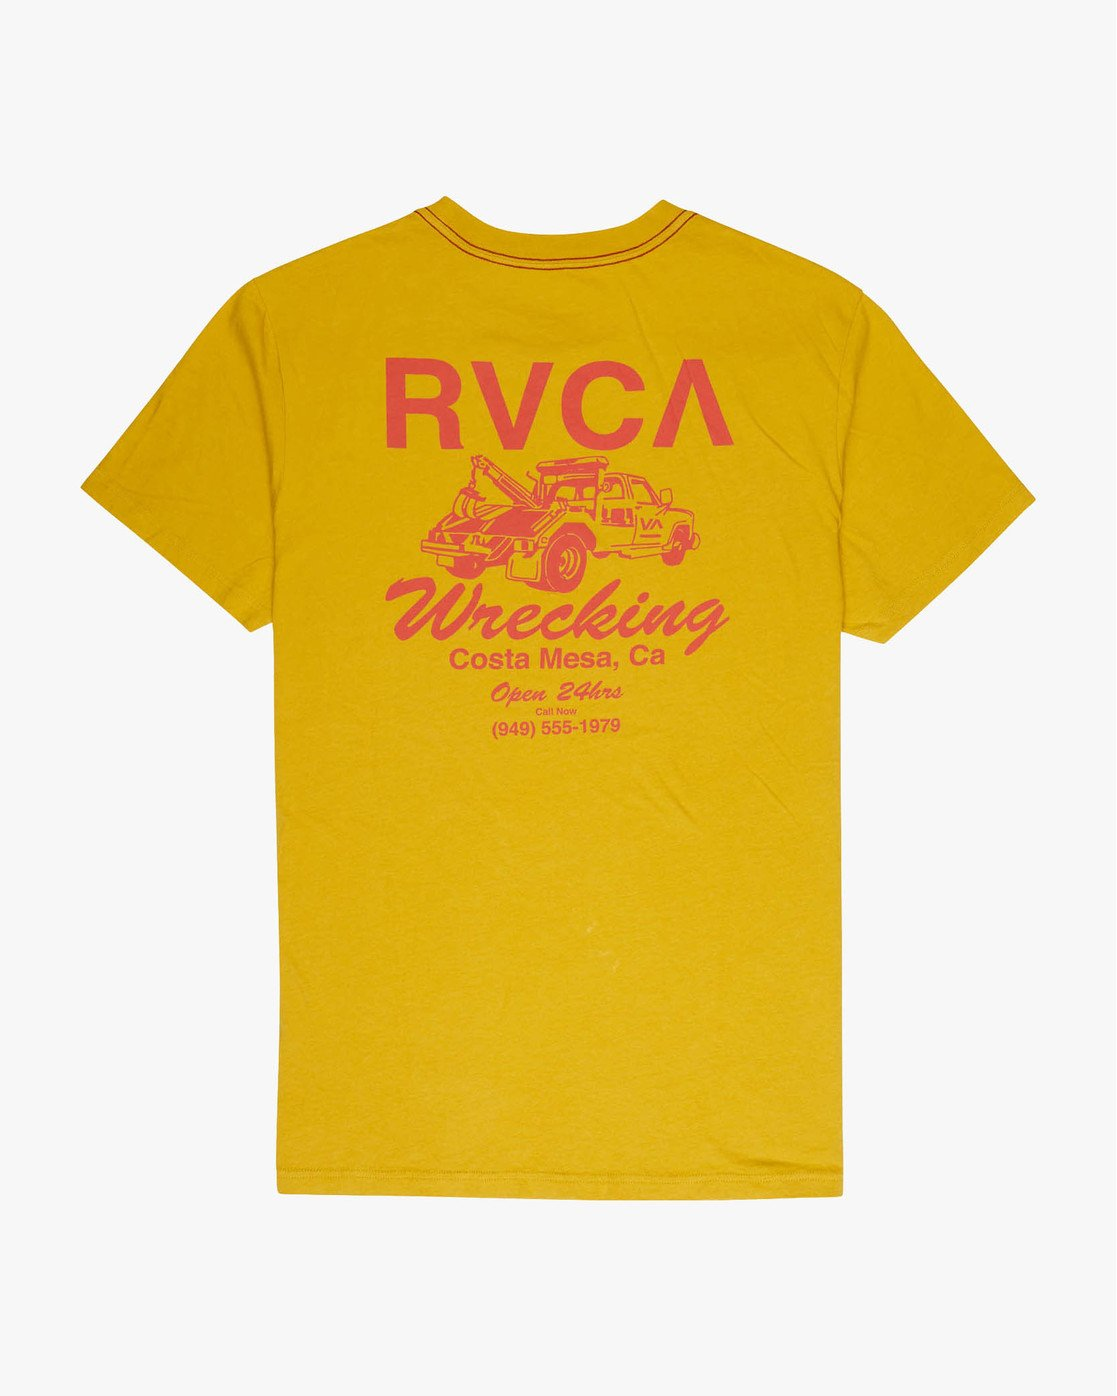 1 RVCA WRECKING  H1SSRFRVP8 RVCA